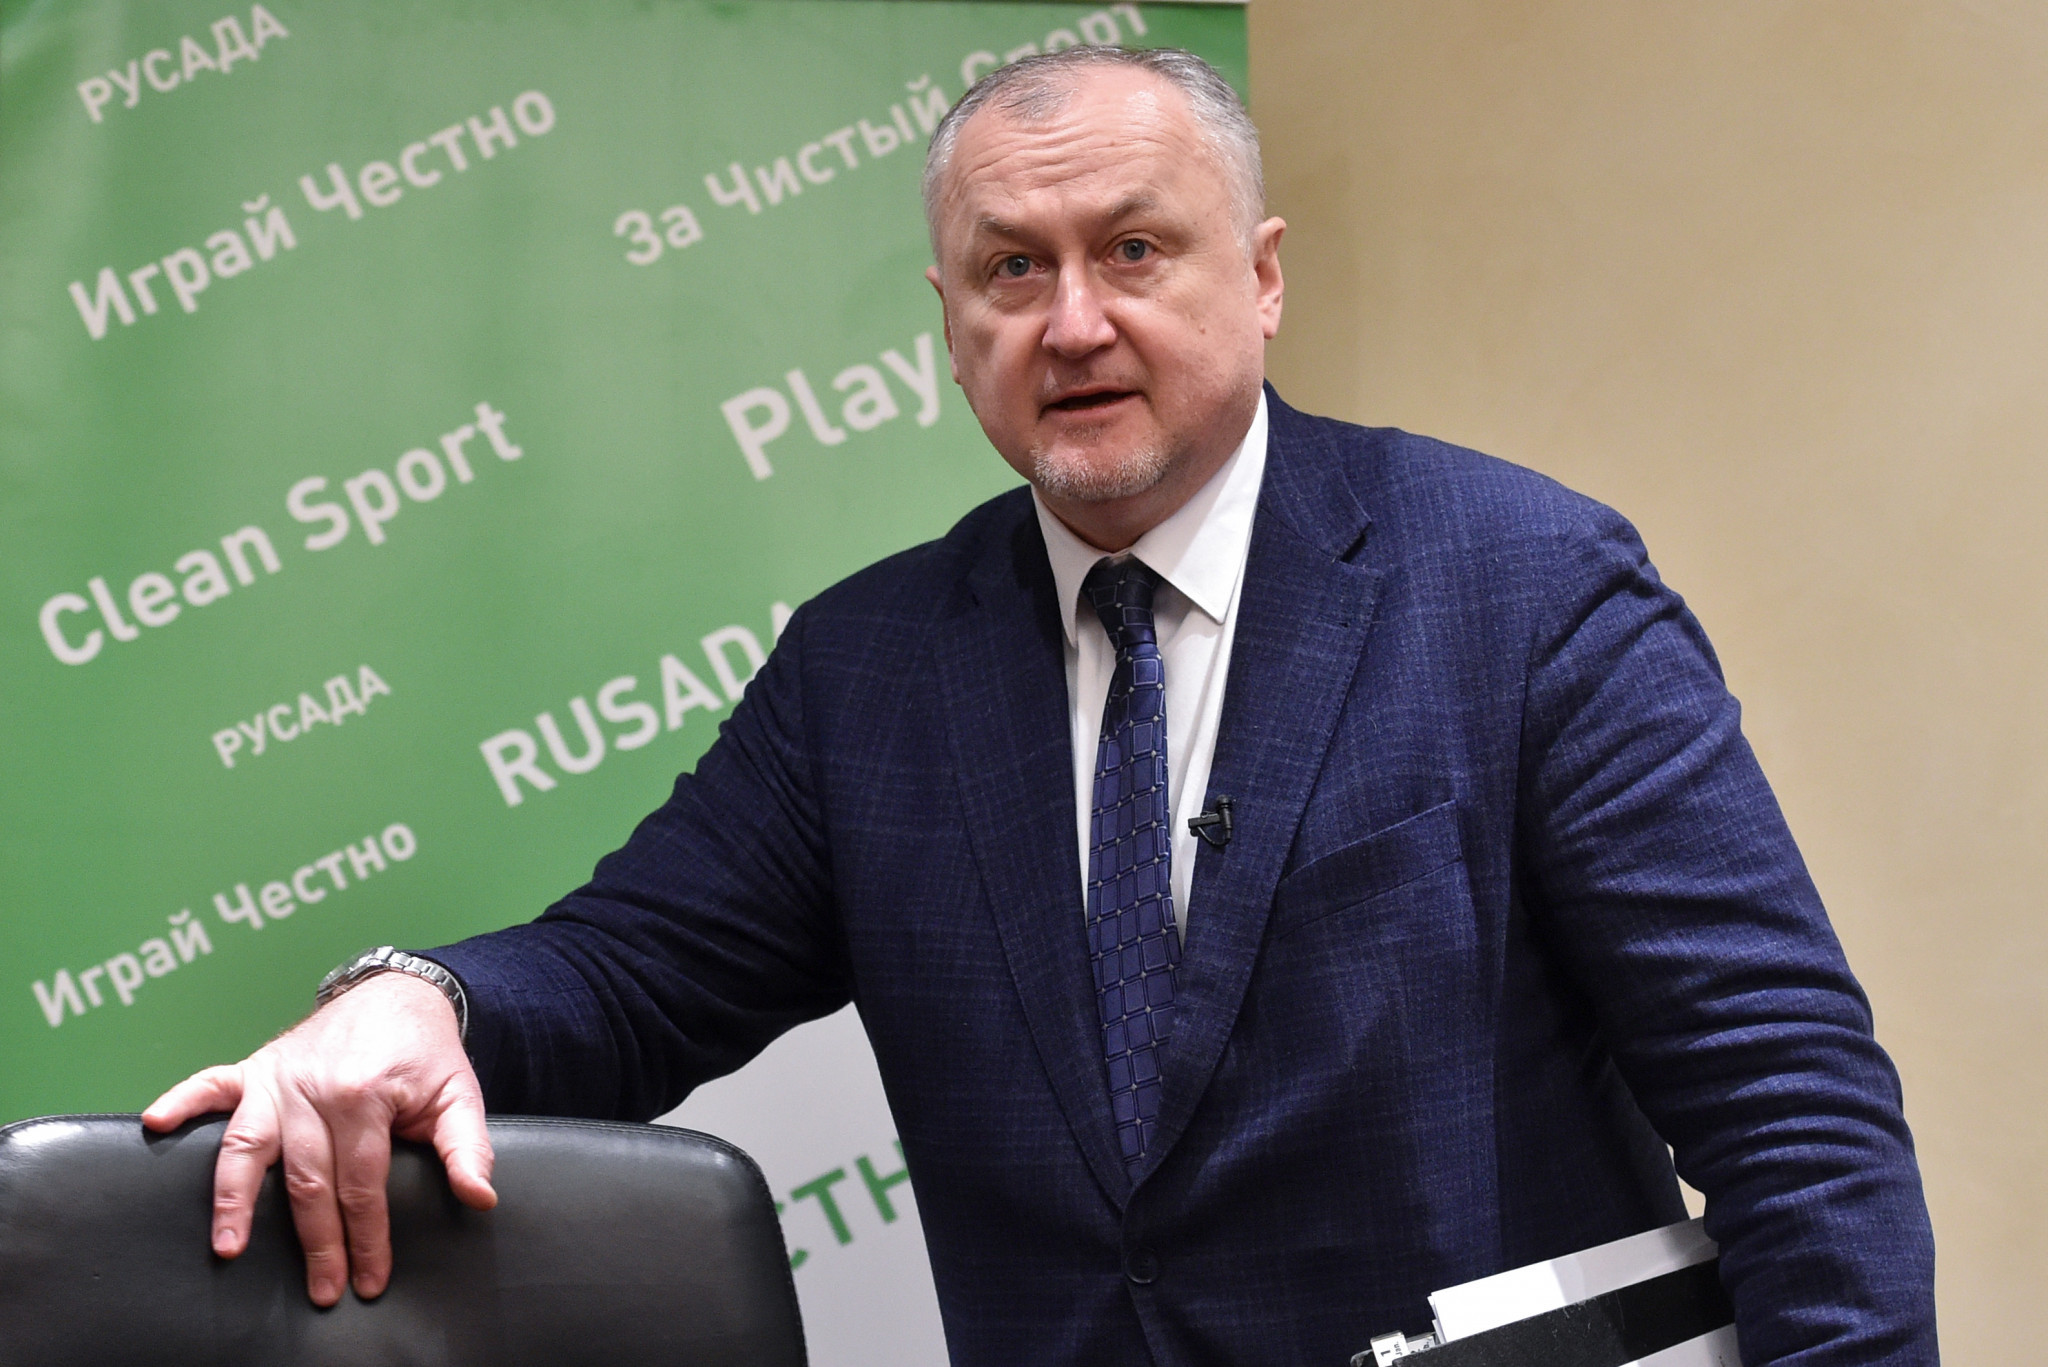 RUSADA director general warns next WADA deadline more difficult than handing over data